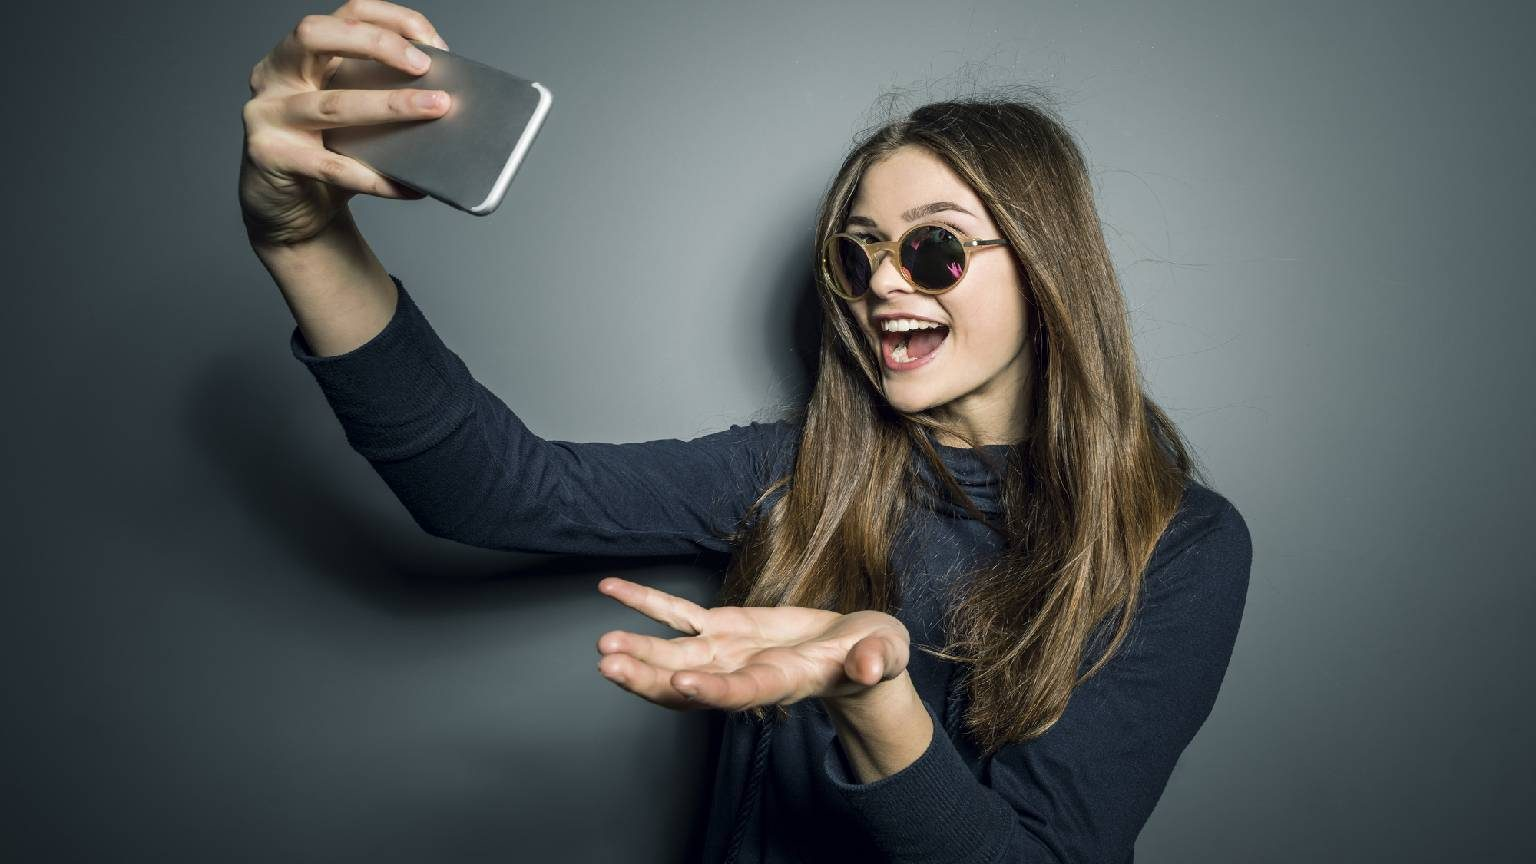 Girl with sunglasses smiling and taking selfie on cell phone.